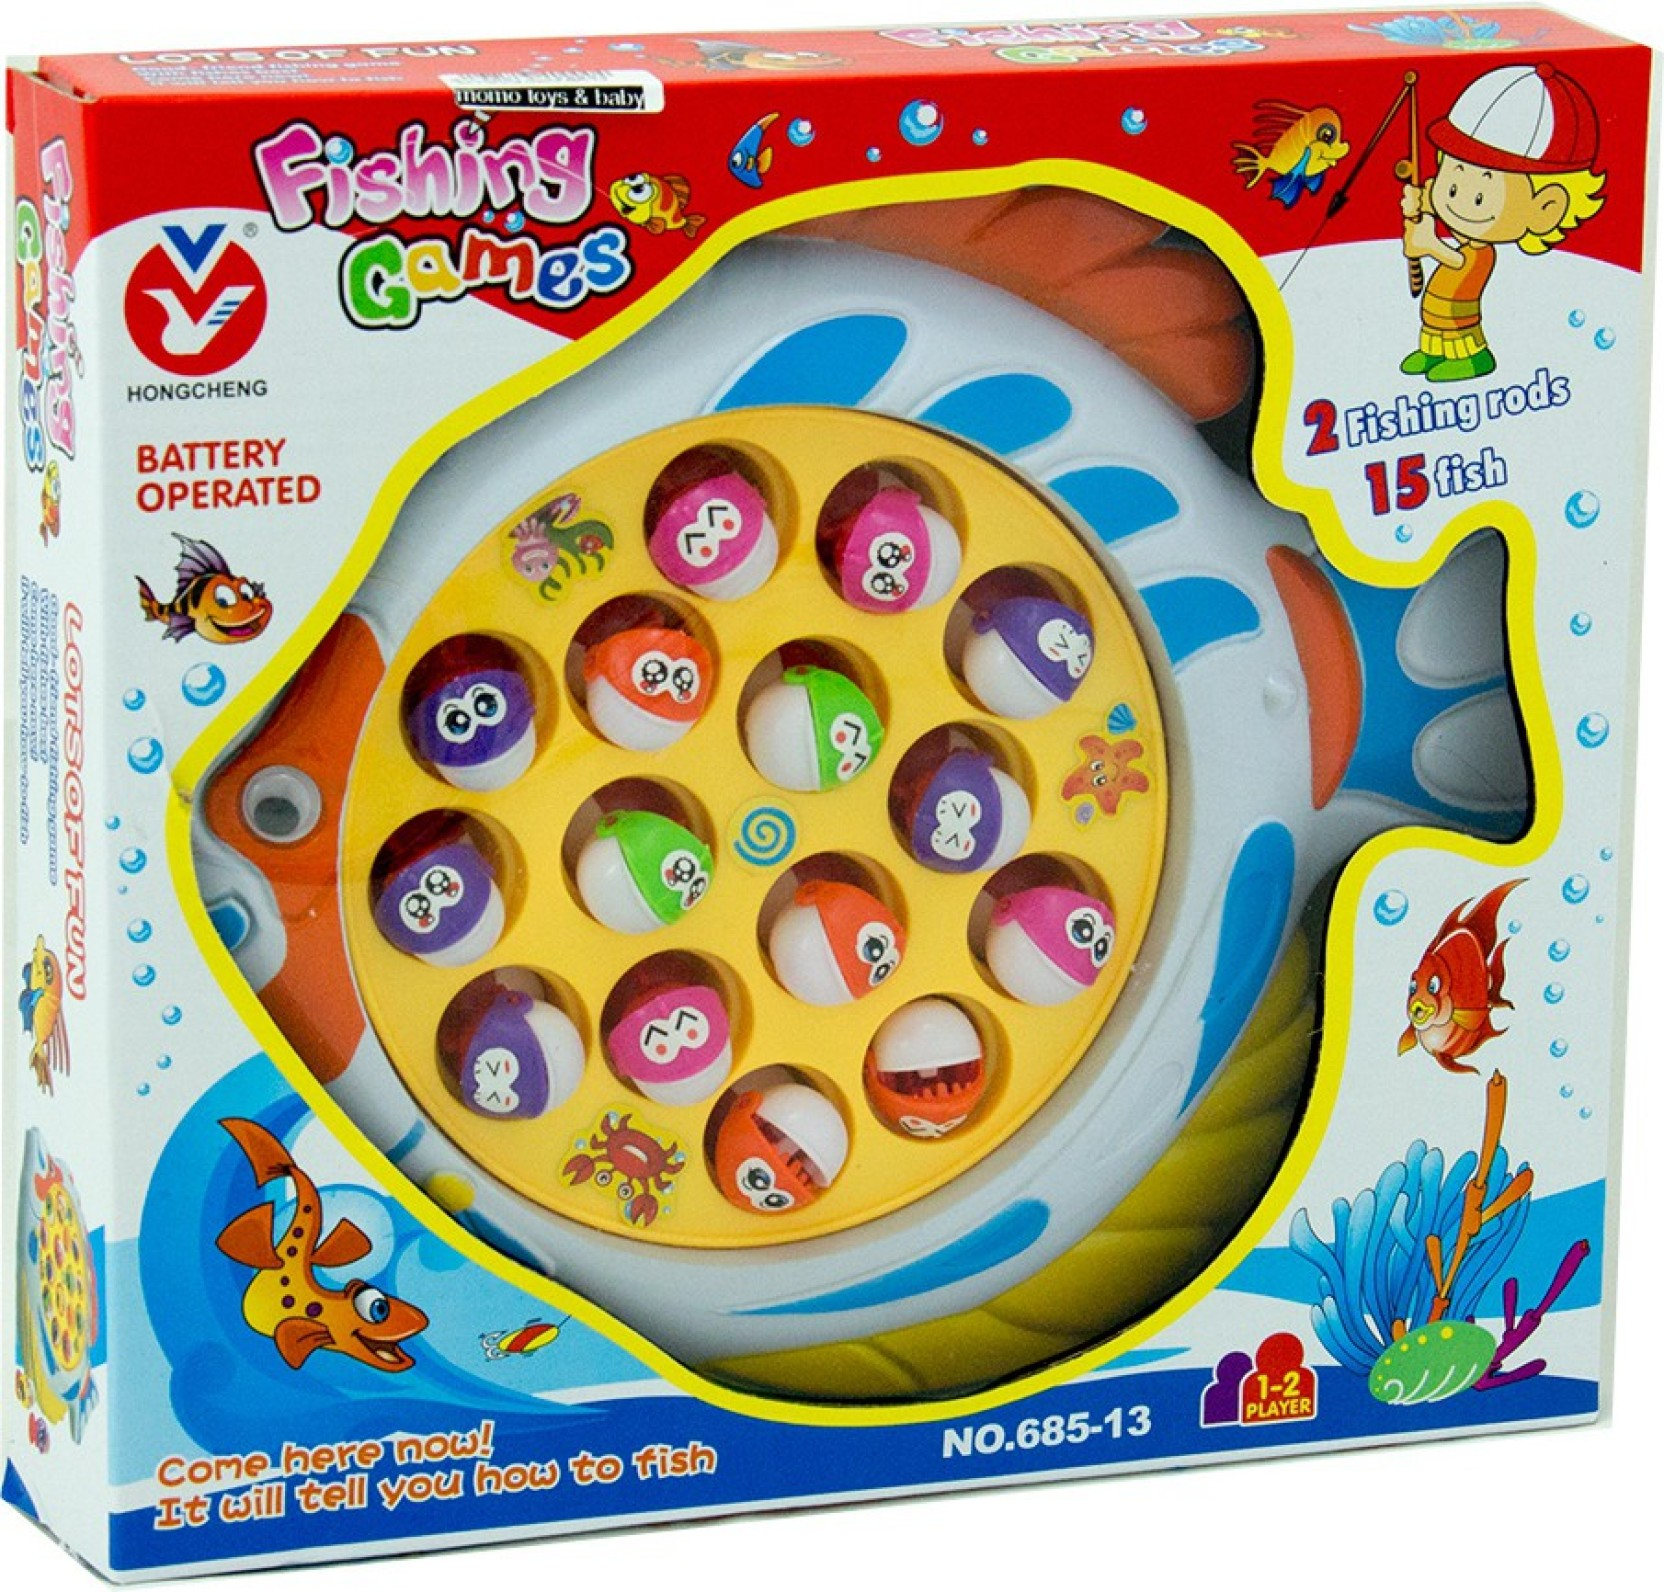 Lavidi lets go fishing magnetic fishing game for kids for Fish card game